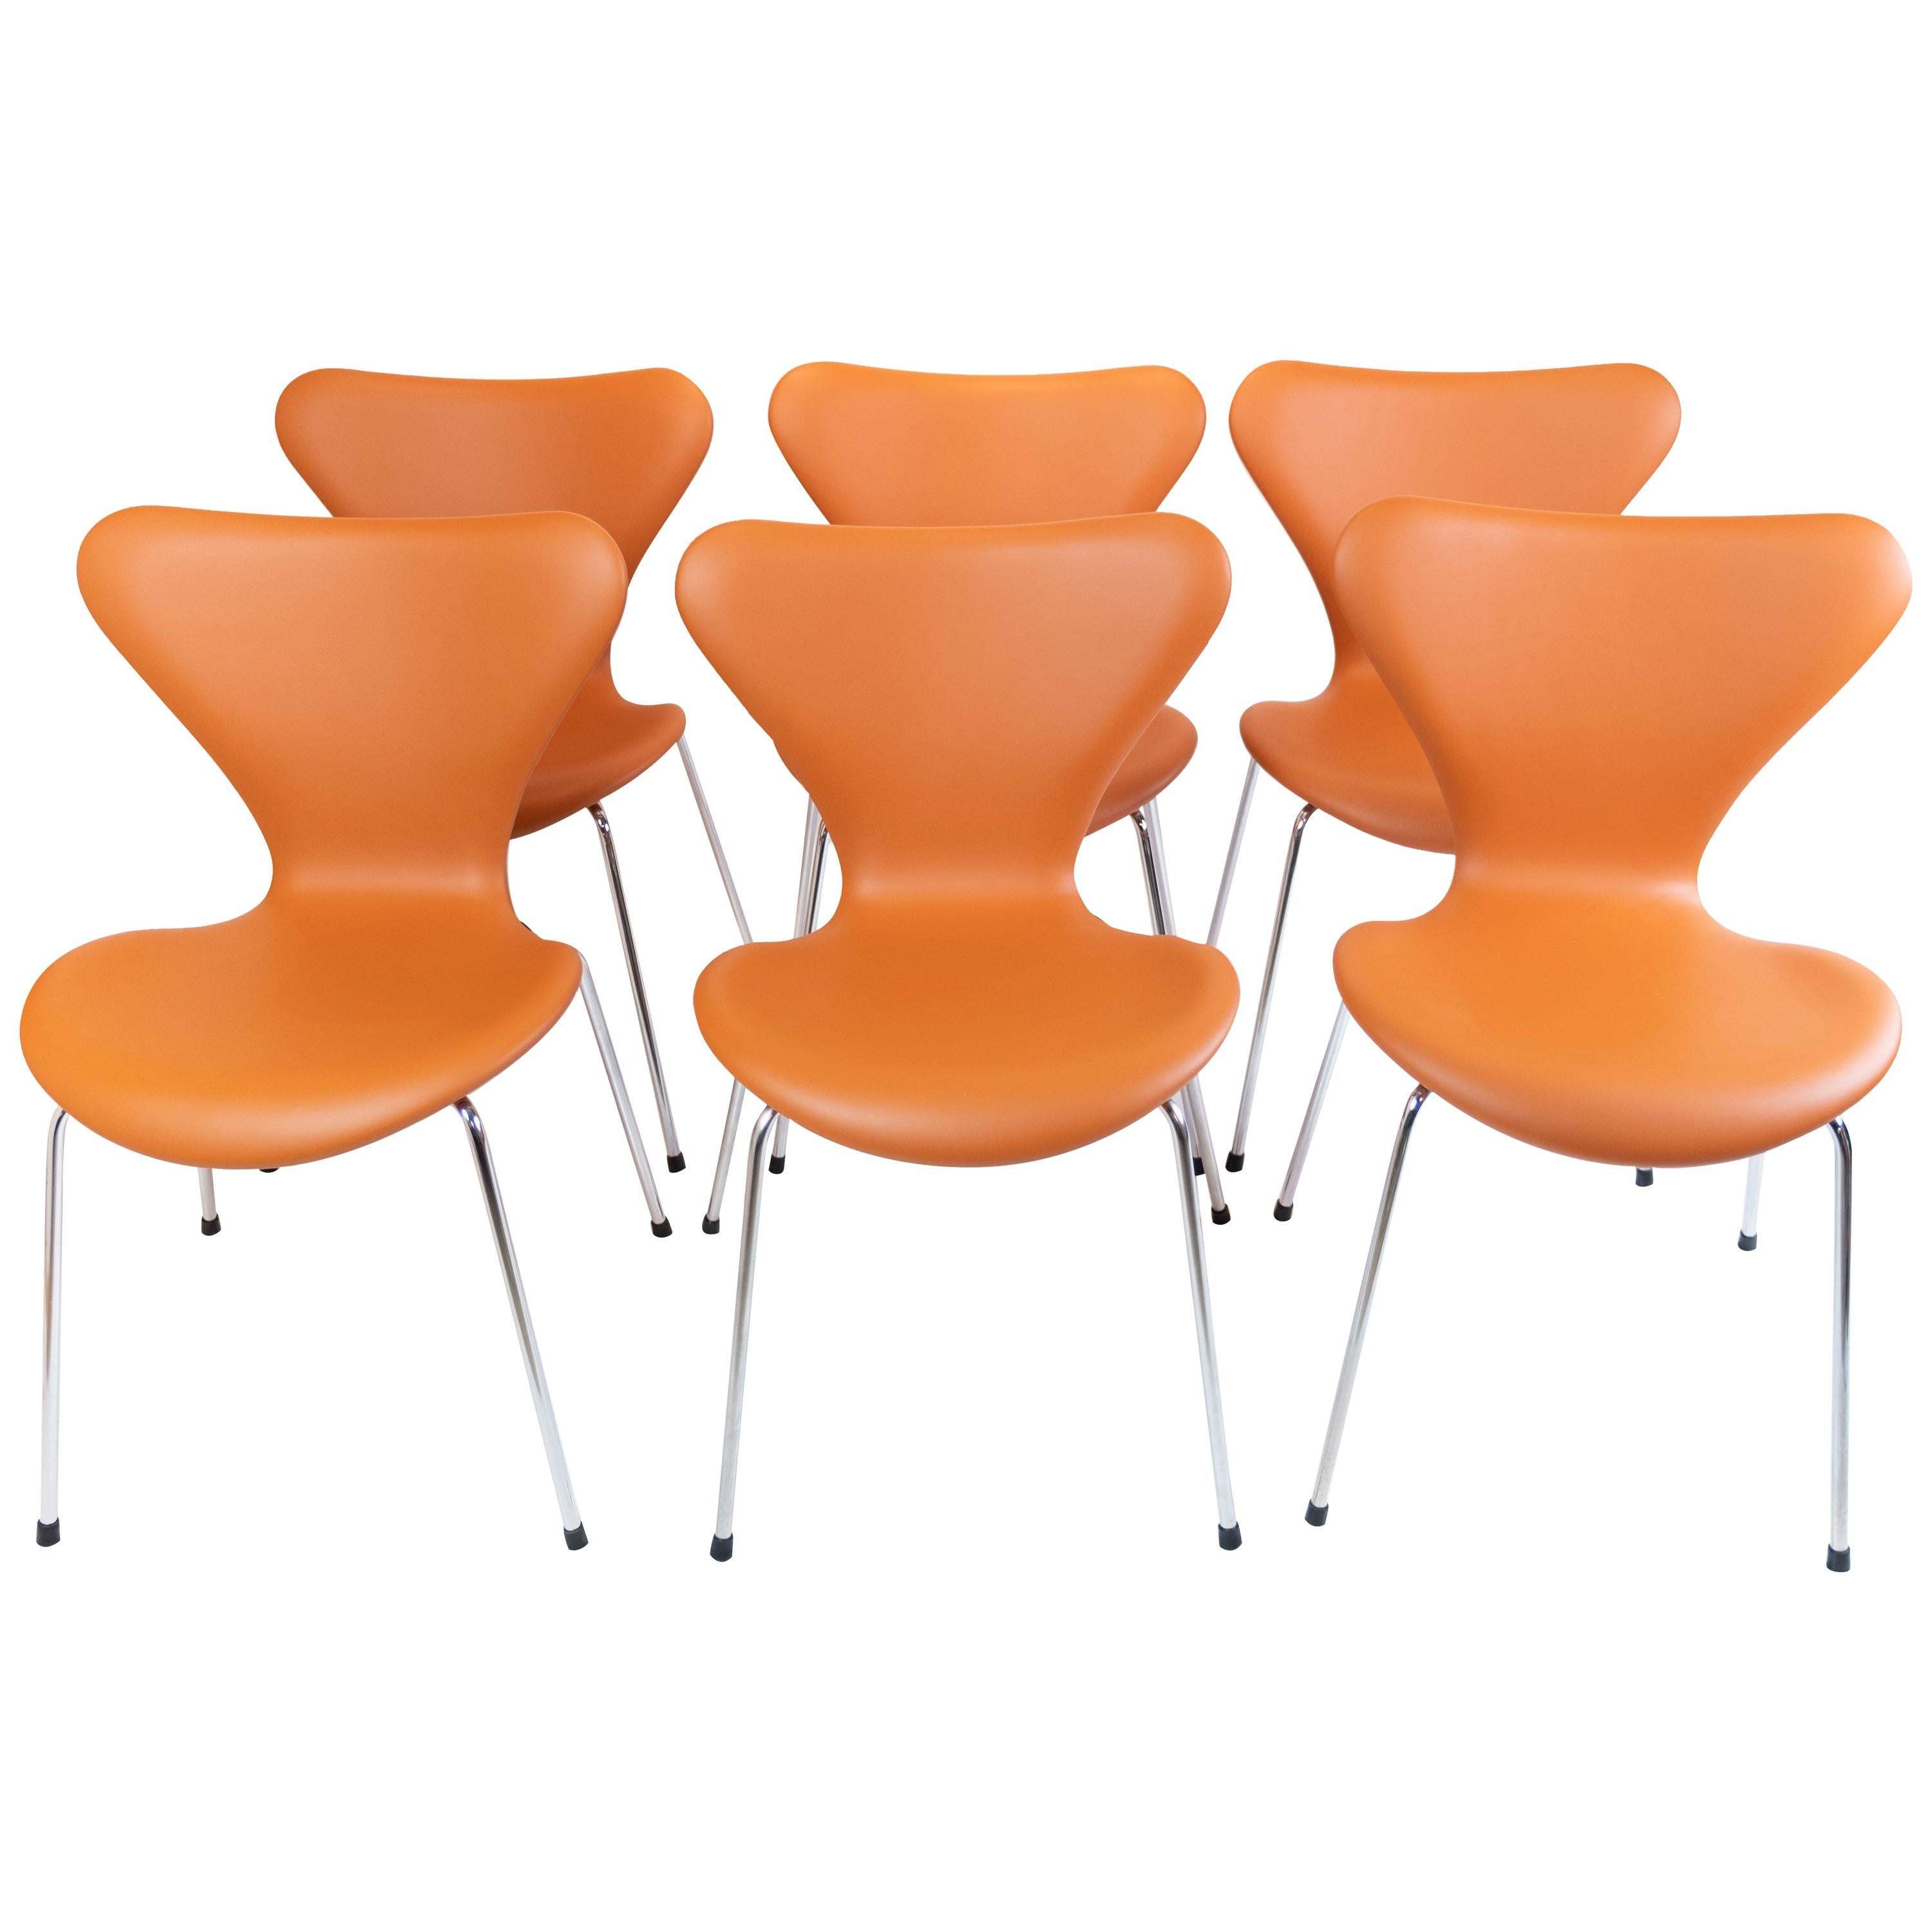 Set of 6 Seven Chairs, Model 3107, Designed by Arne Jacobsen